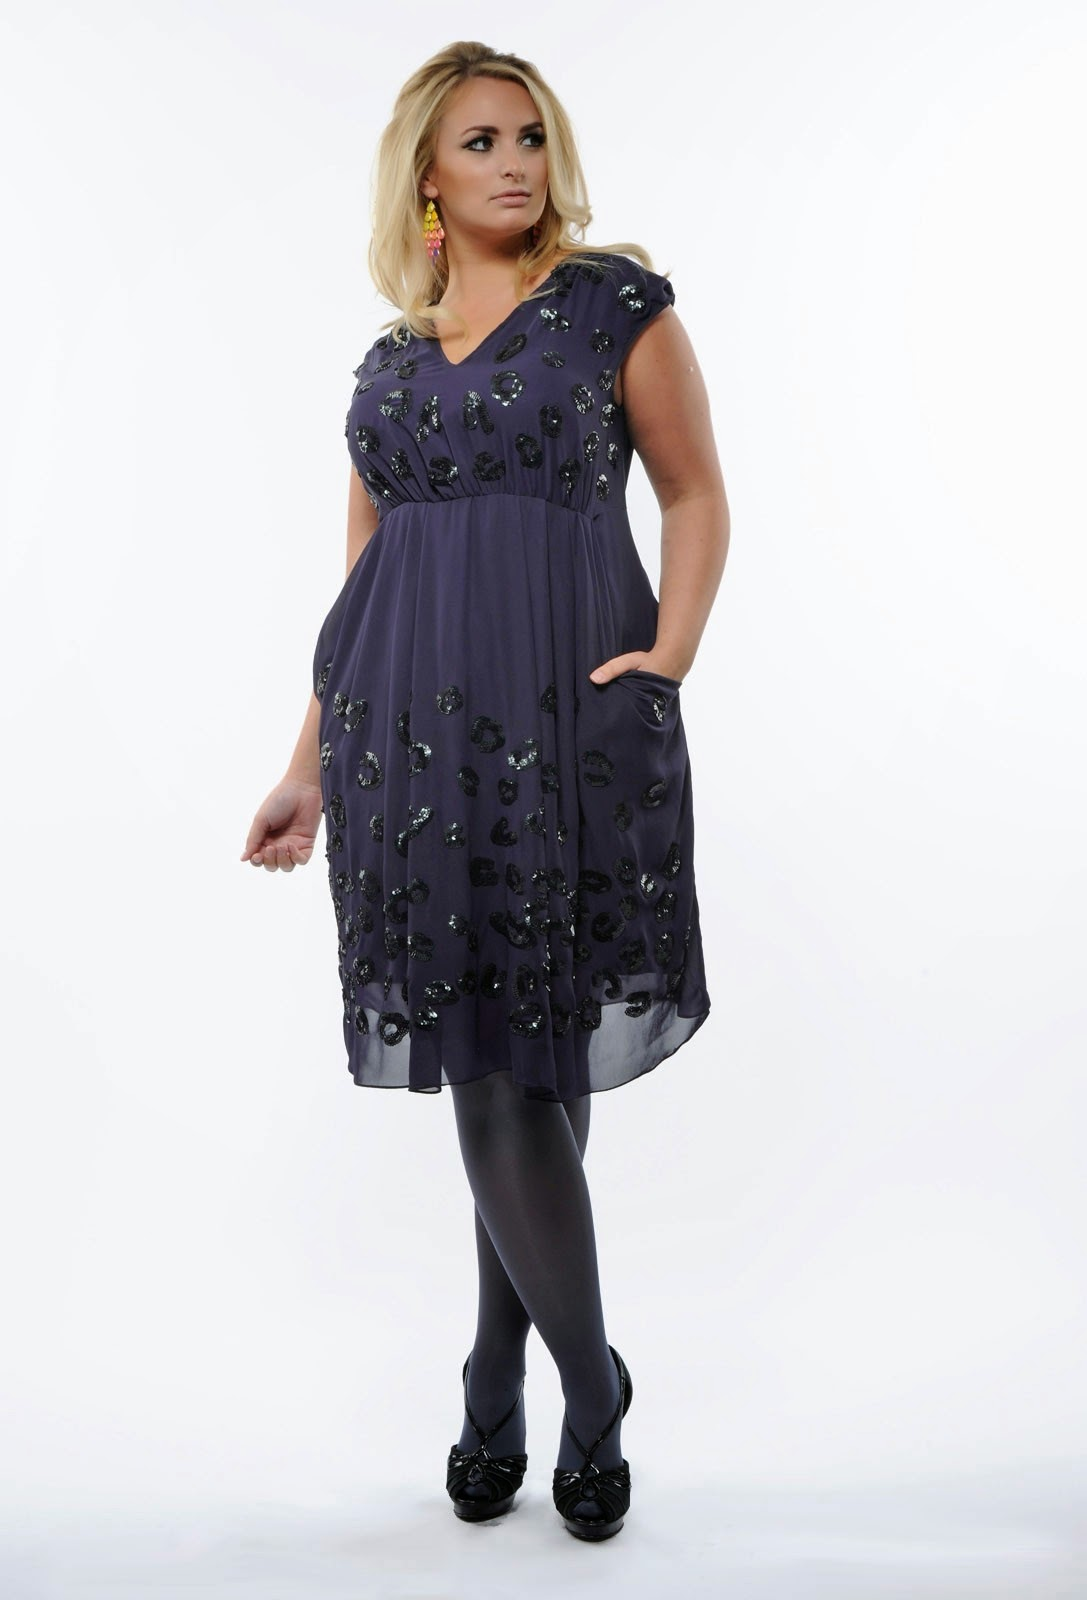 All About Women S Things Plus Size Teen Fashion Comes Of Age